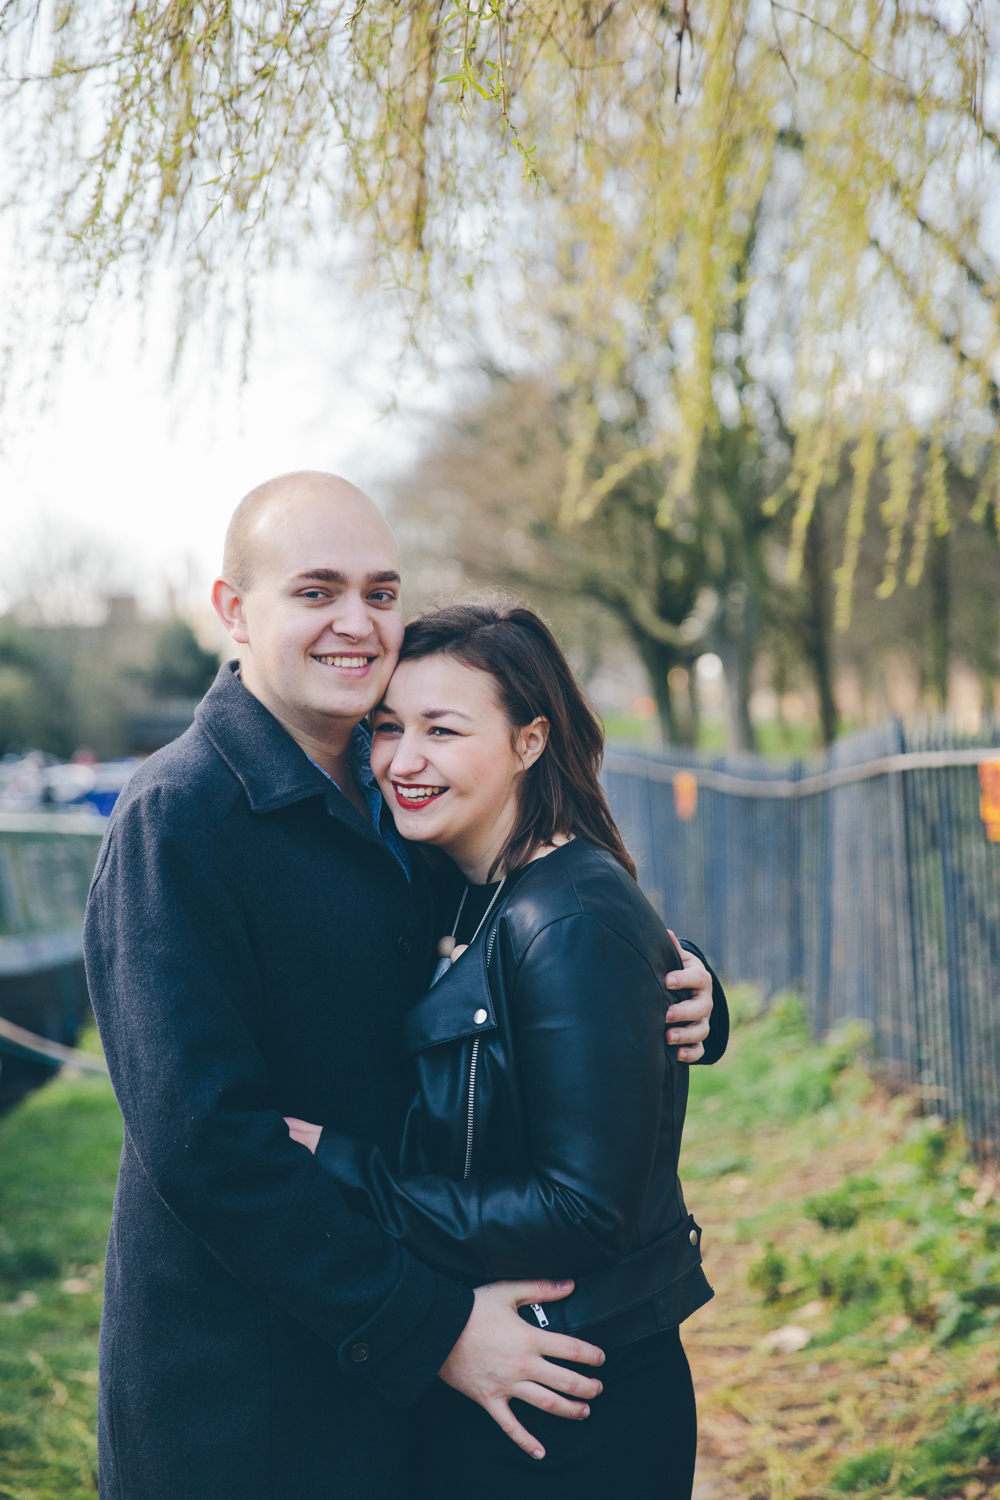 Joanne_crawford_photography_london_engagement_3.jpg